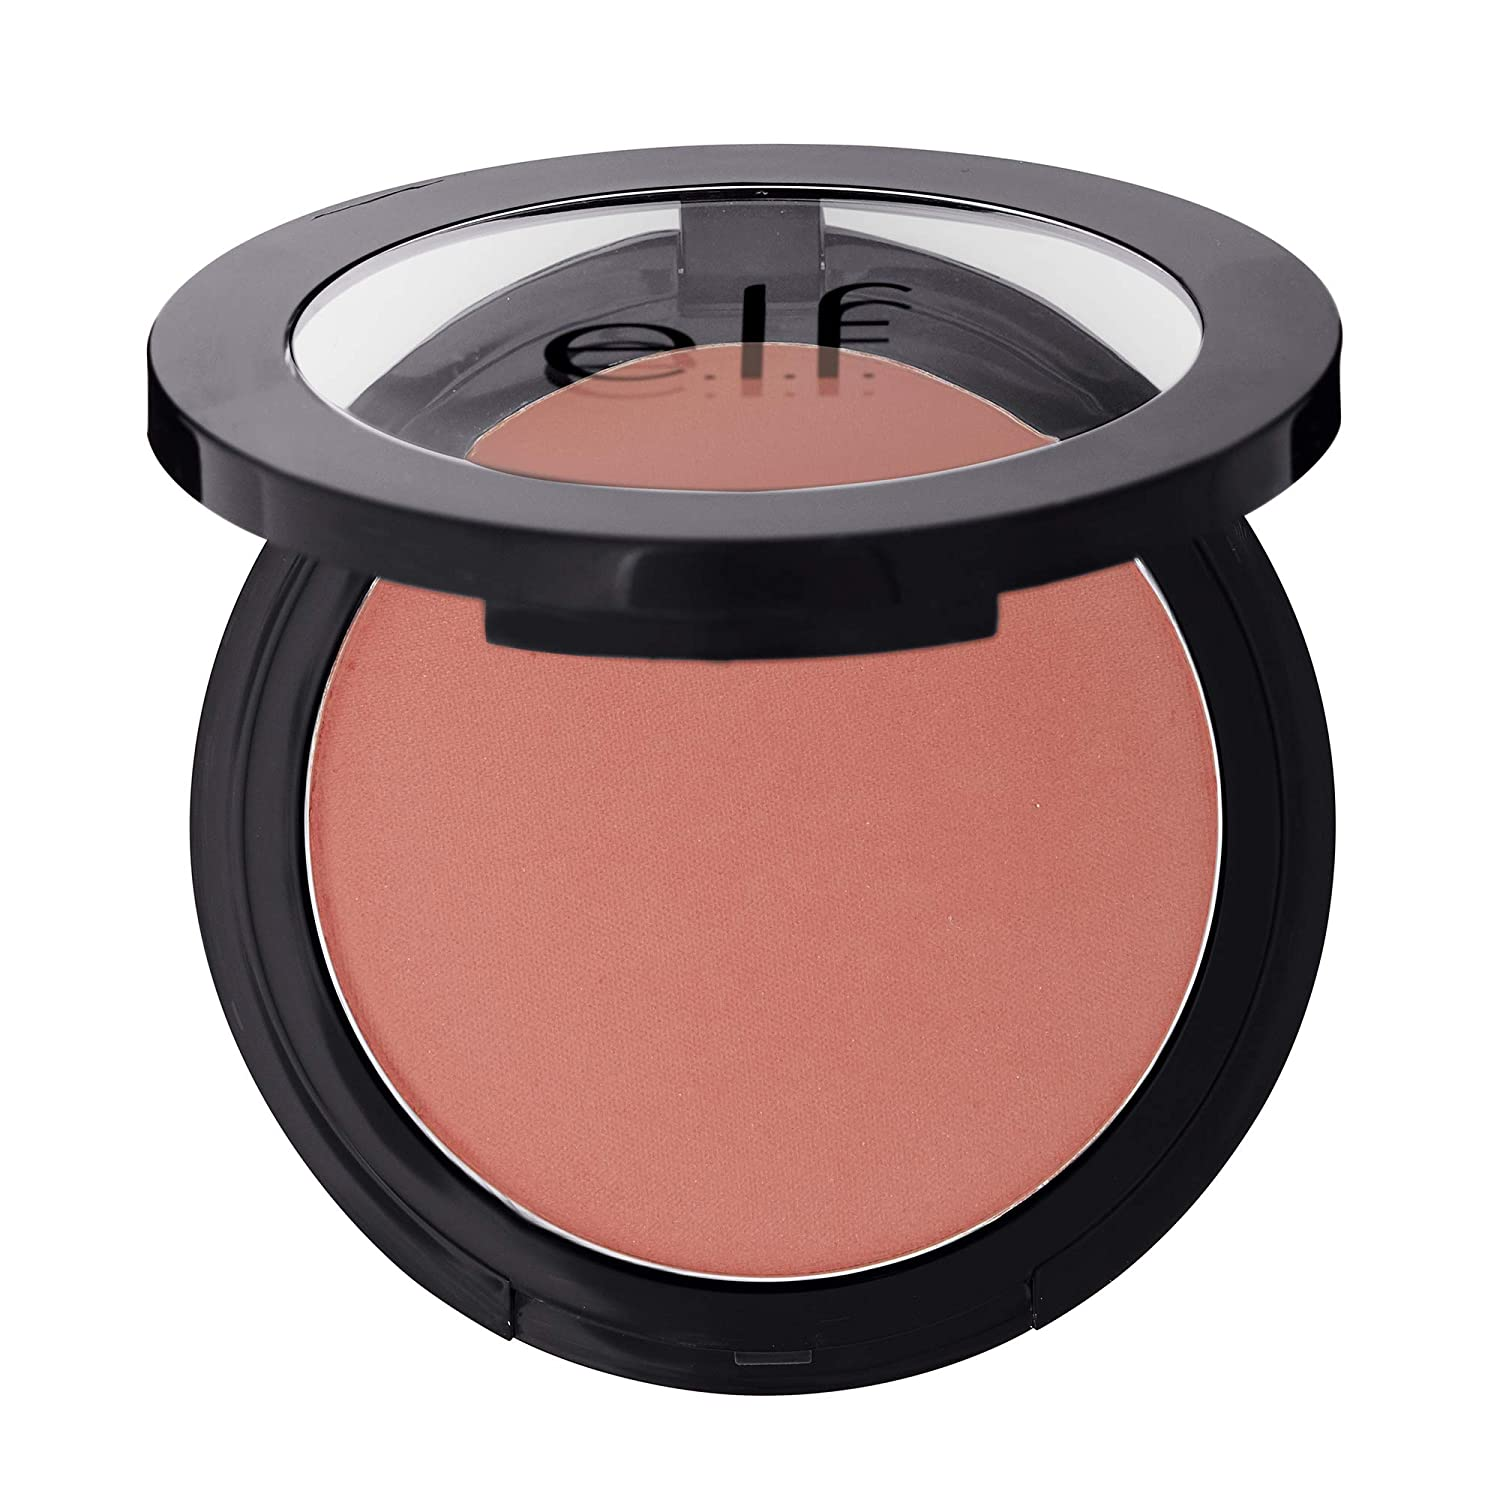 e.l.f. PrimerInfused Blush, LongWear Matte Finish, Always Rosy, 0.35 Ounce